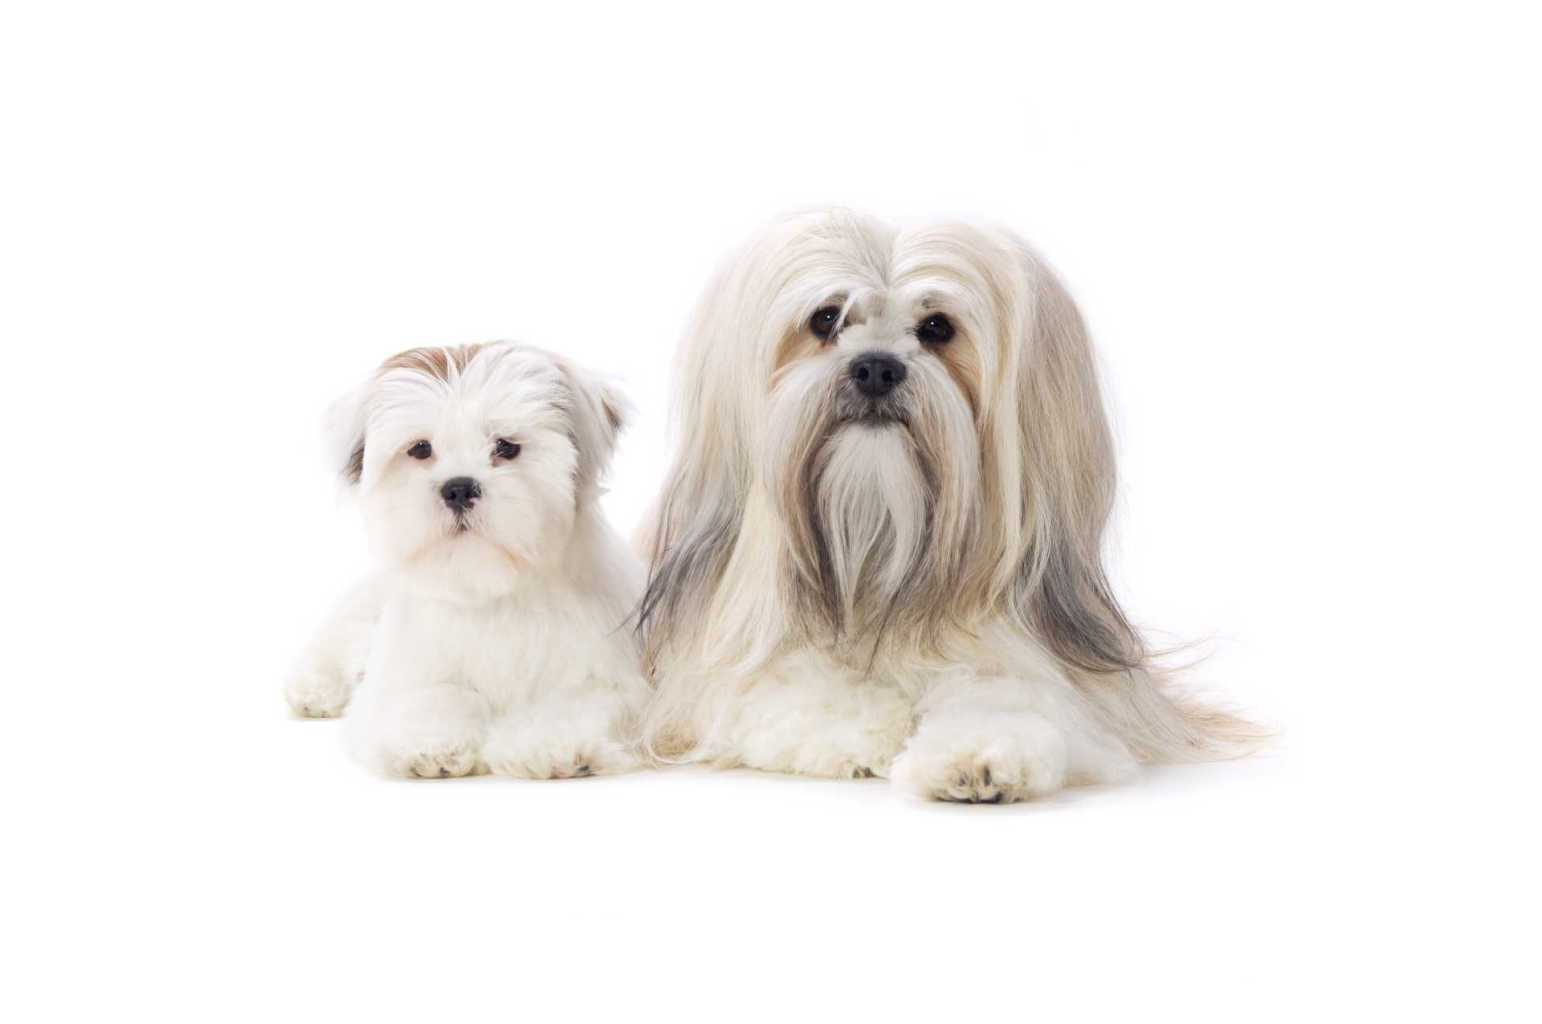 Adult and puppy Lhasa Apso dogs